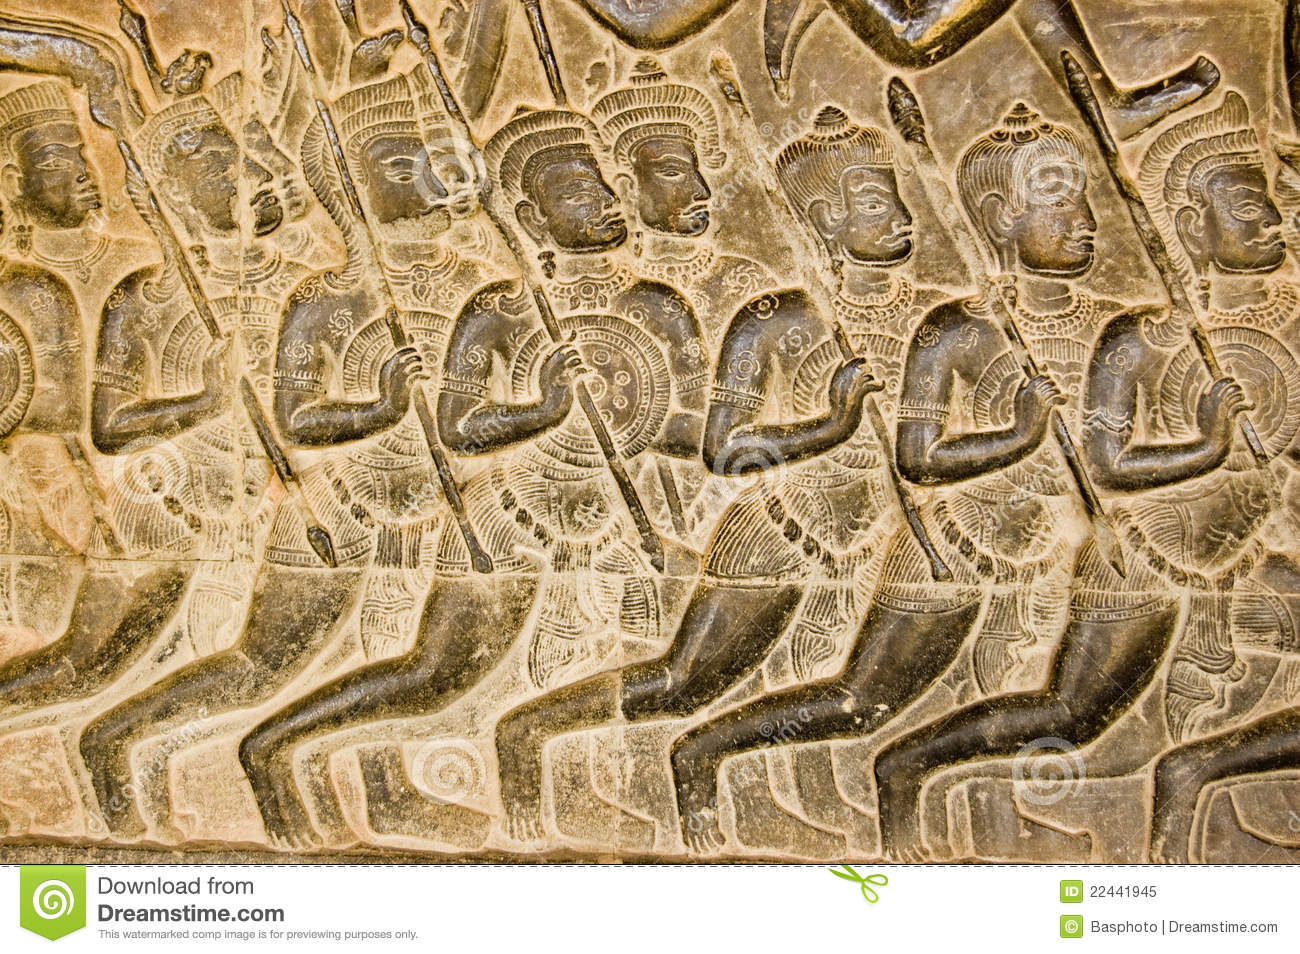 Kaurava army bas relief angkor wat royalty free stock